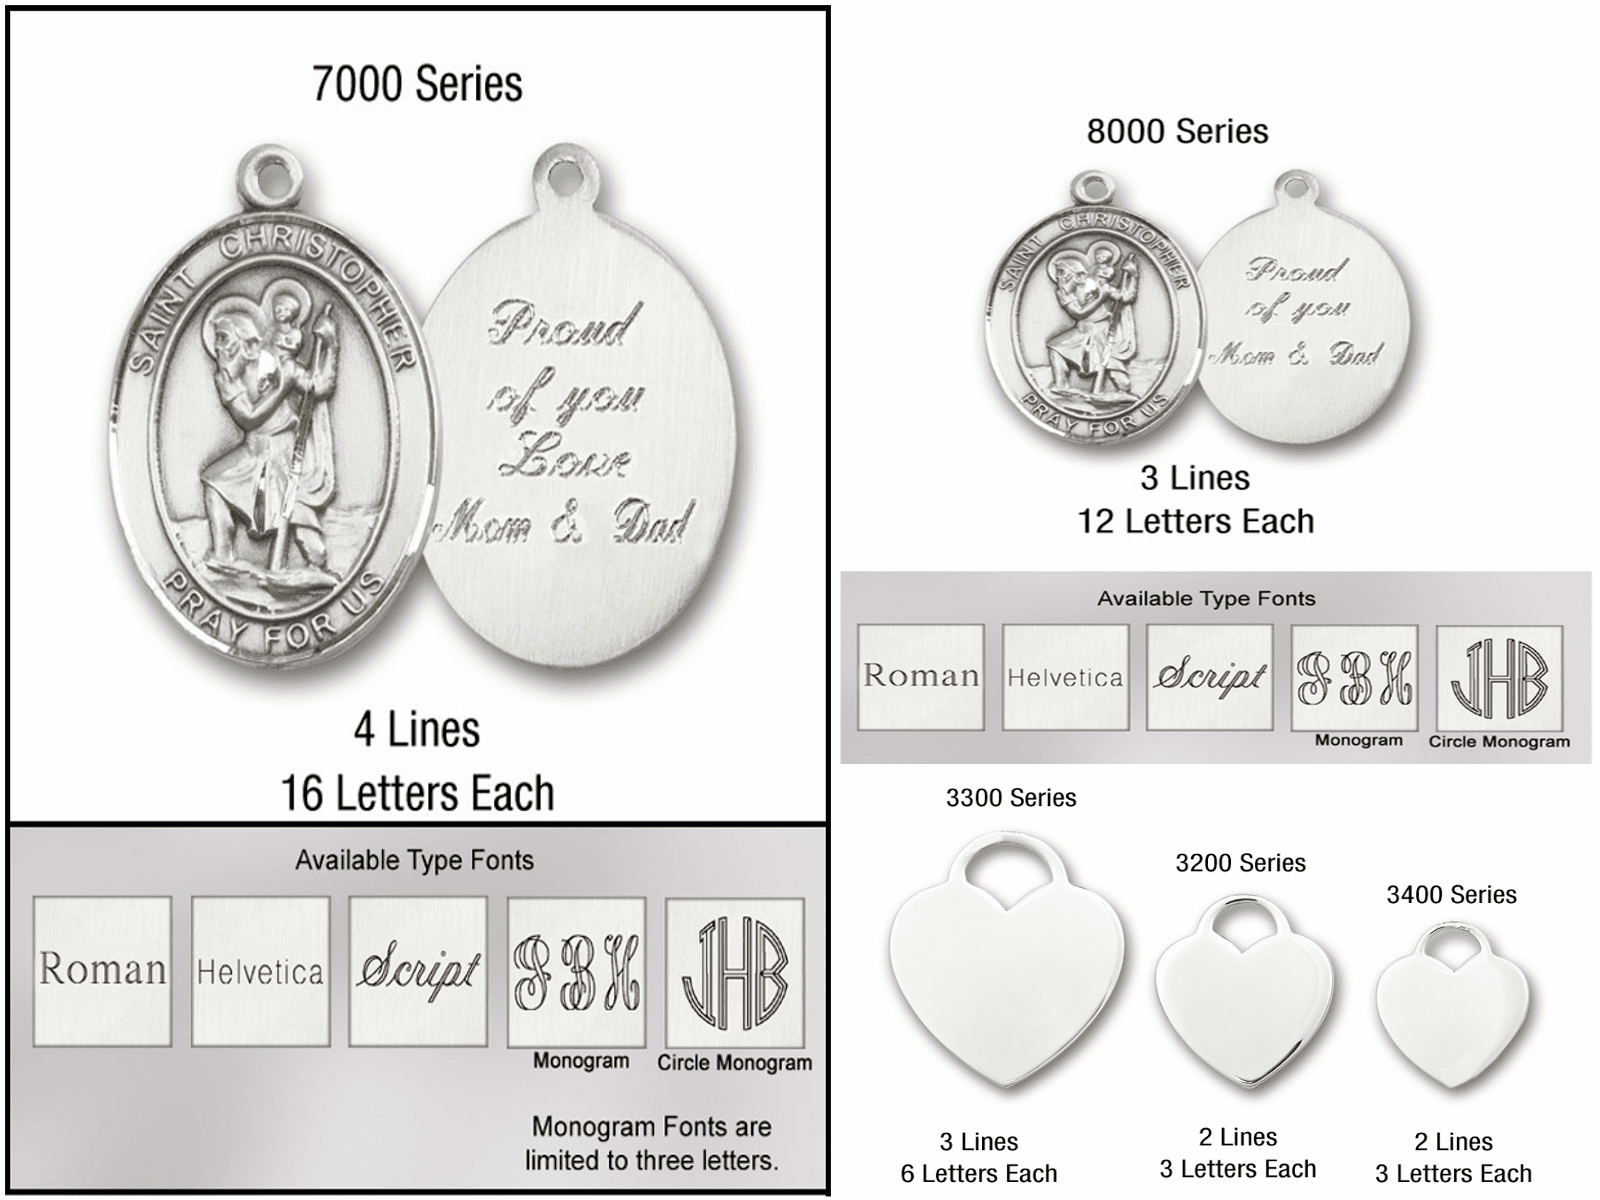 Bliss Manufacturing Engraving Options